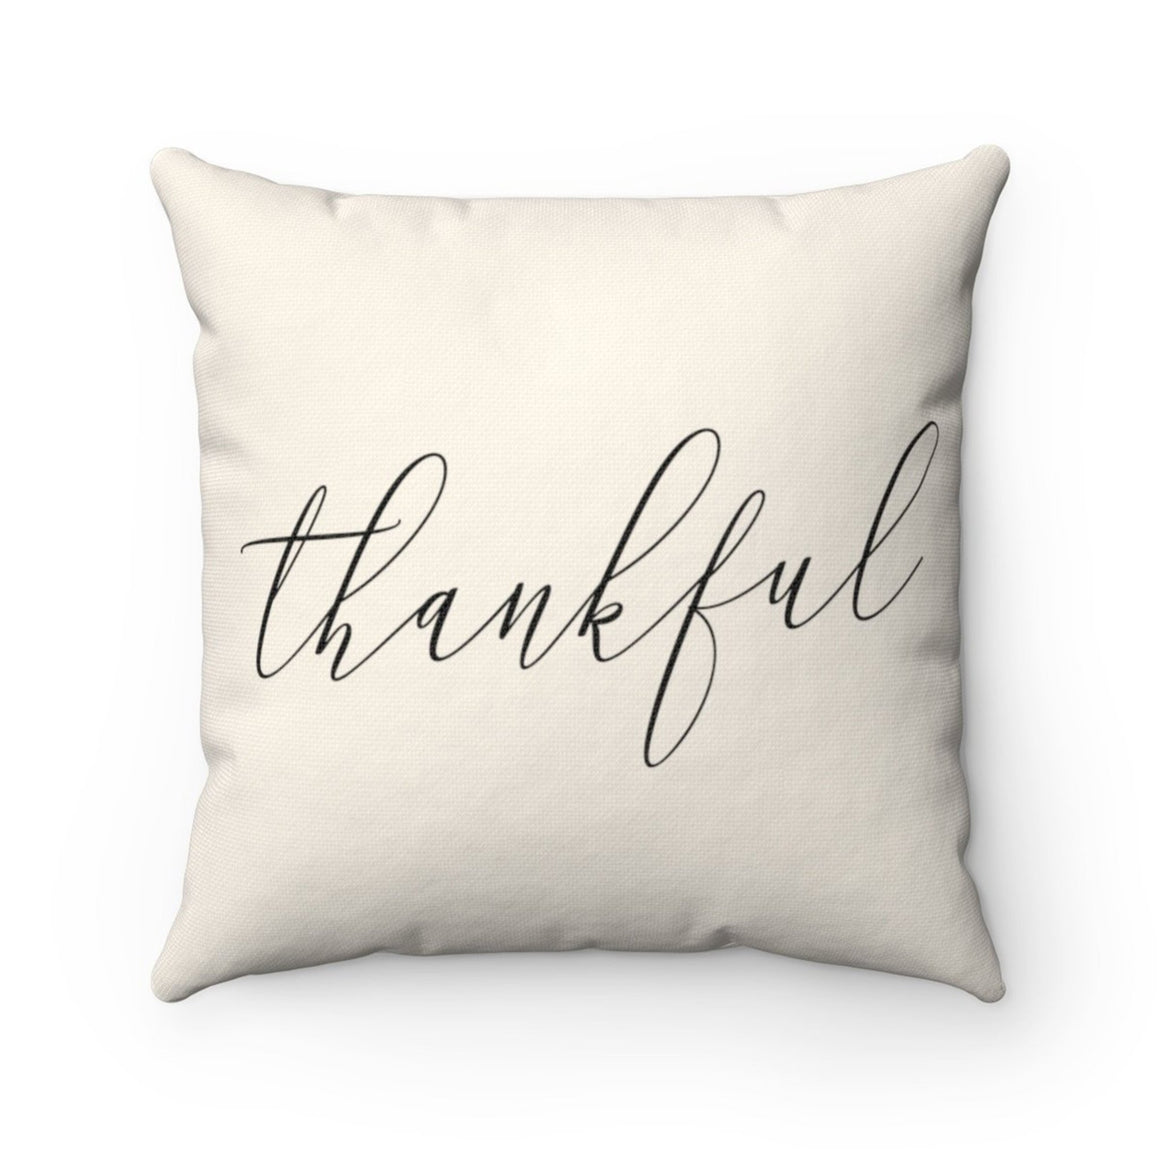 Thankful Pillow - Pretty Collected